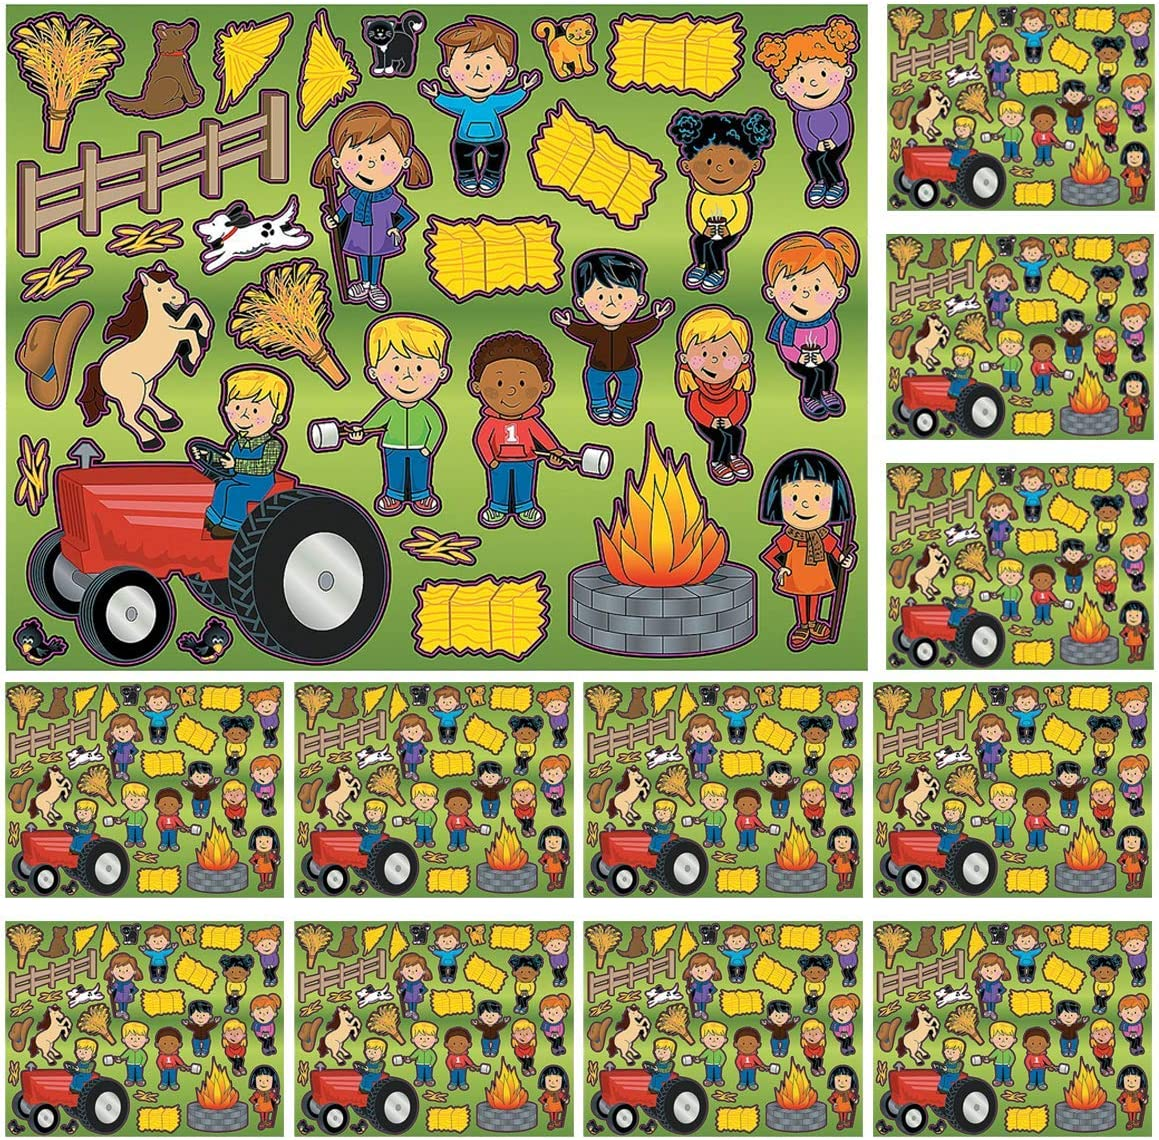 Kicko Make a Hayride Sticker - Set of 12 Hayride Stickers Scene for Birthday Treat, Goody Bags, School Activity, Group Projects, Room Decor, Arts and Crafts